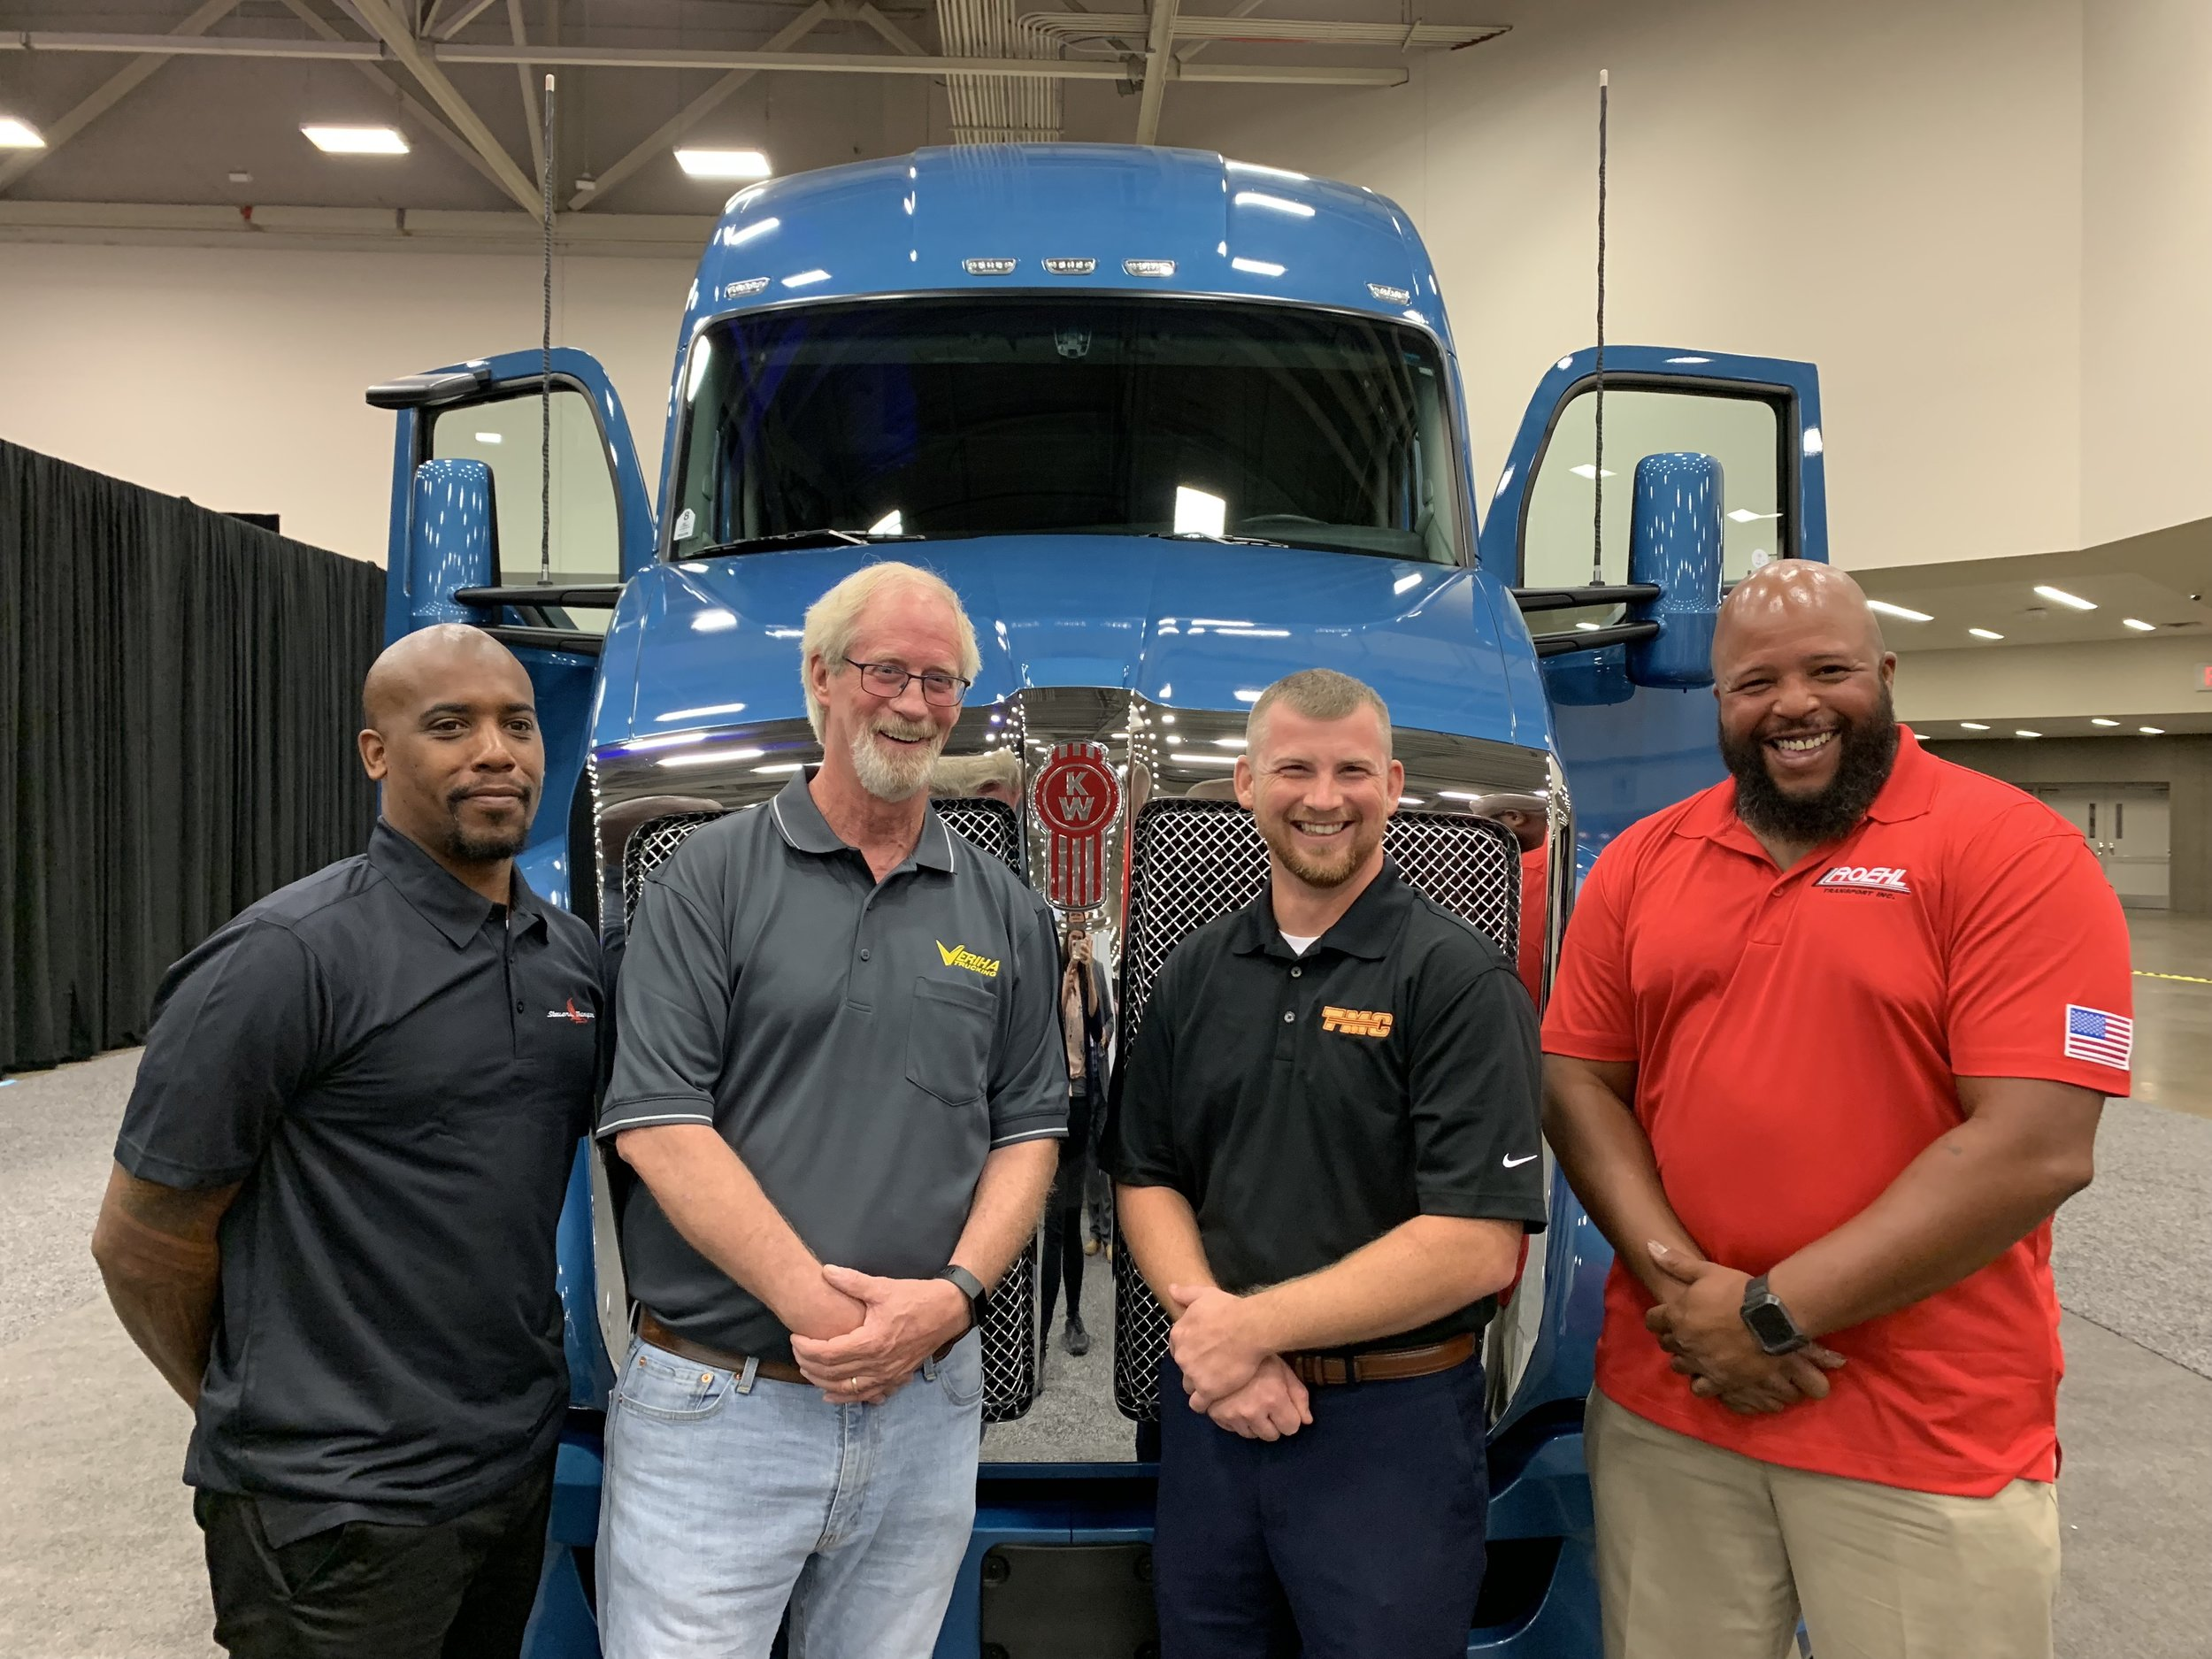 Top 4 Finalists in front of Kenworth T680 trucking that will be awarded to the ultimate winner of the Transition Trucking: Driving for Excellence Award. From left to right: Steven Harris, Wade Bumgarner, Christopher Bacon, and Joseph Campbell.